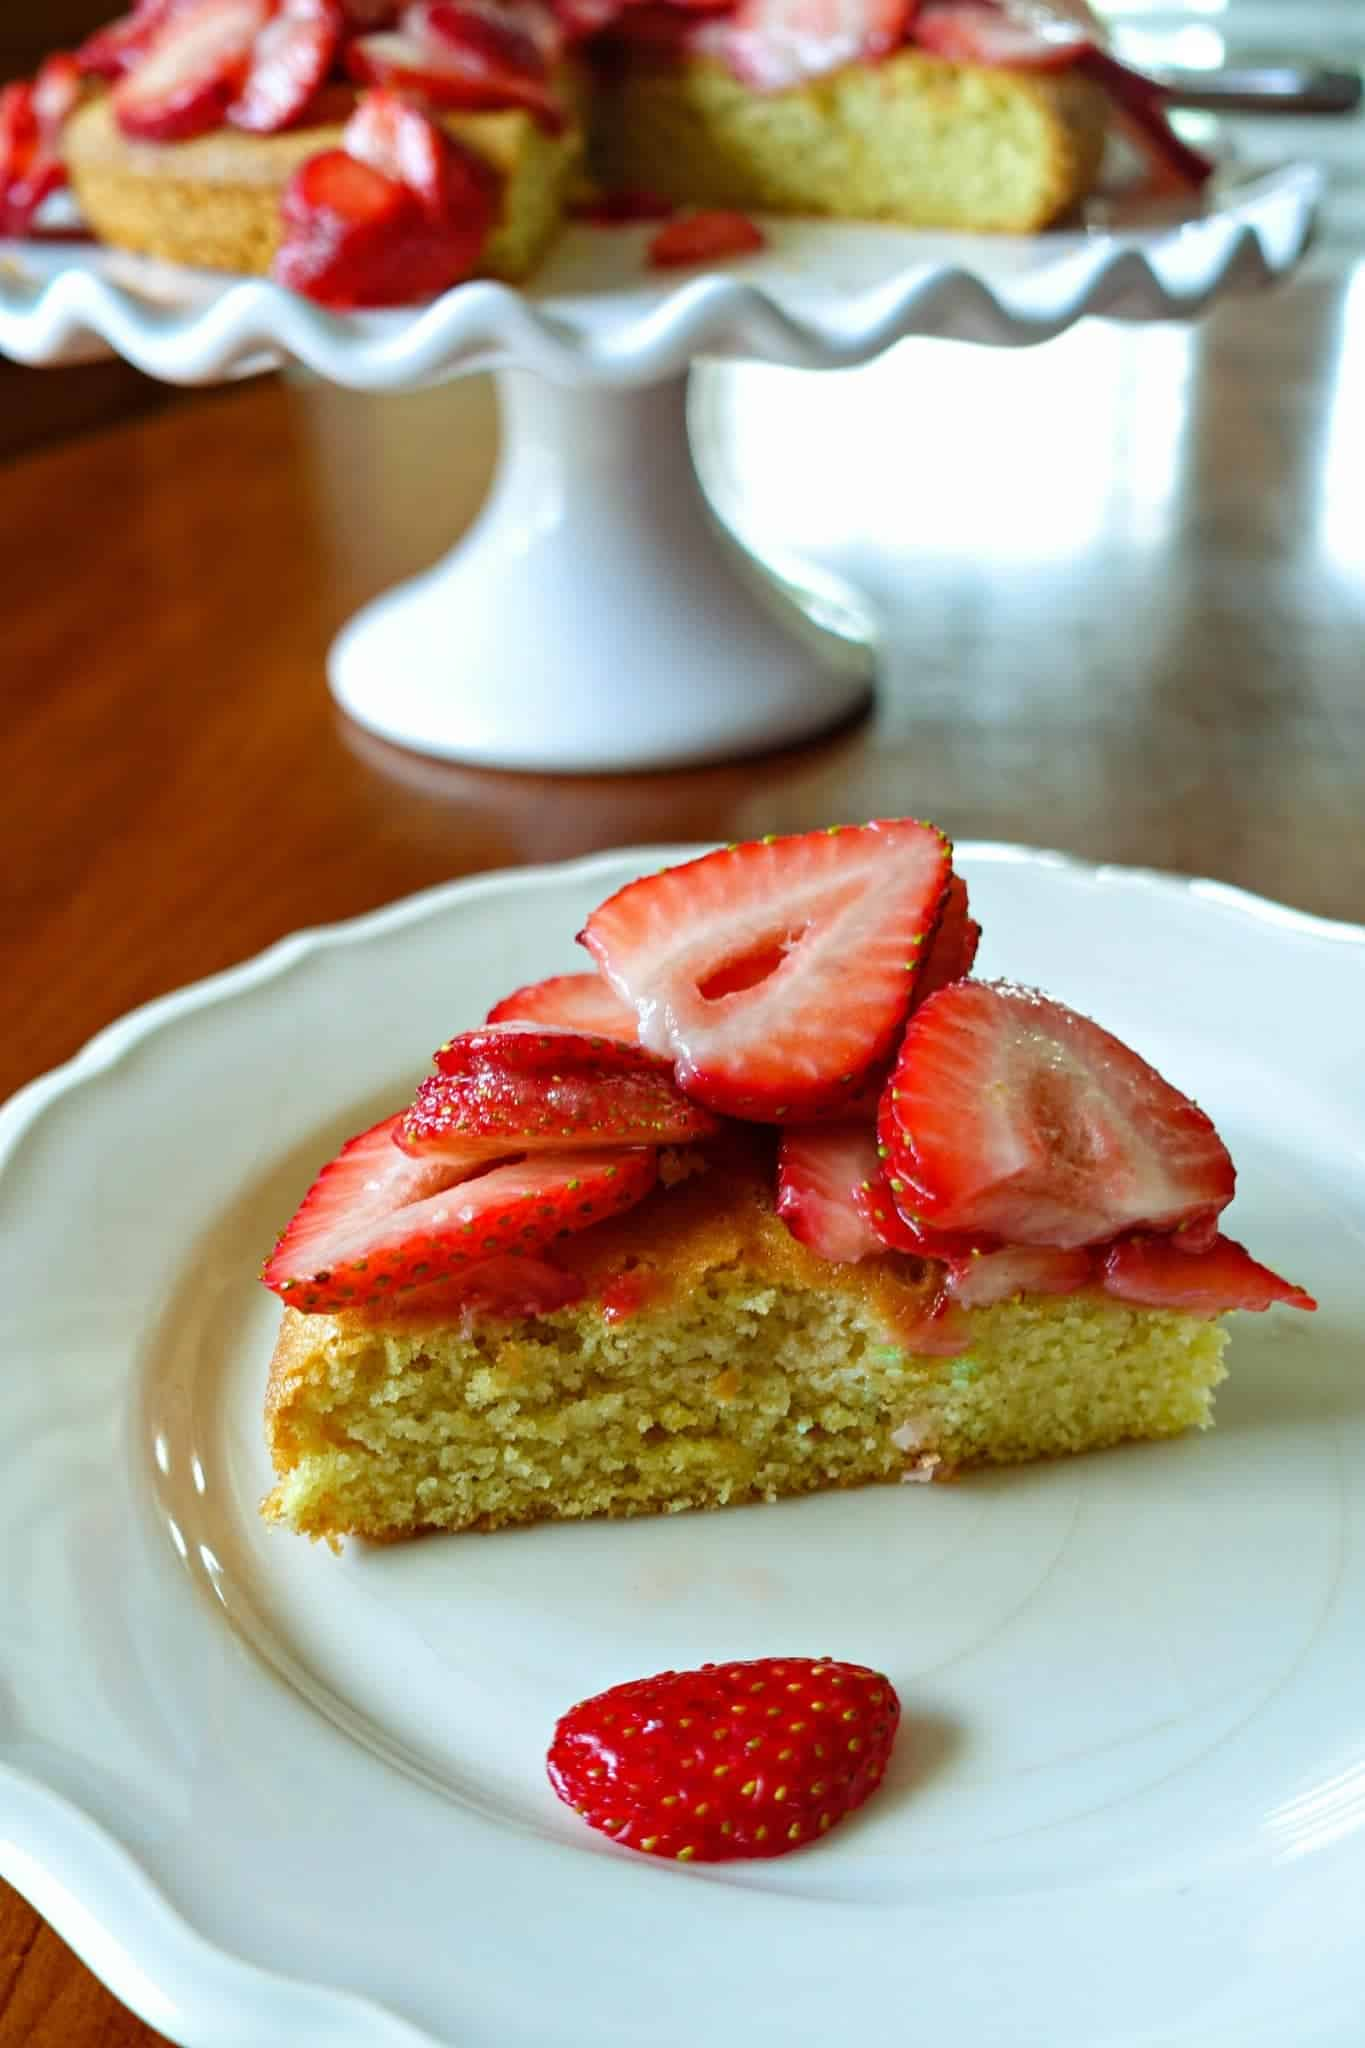 Strawberry Almond Flour Cake from King Arthur Flour